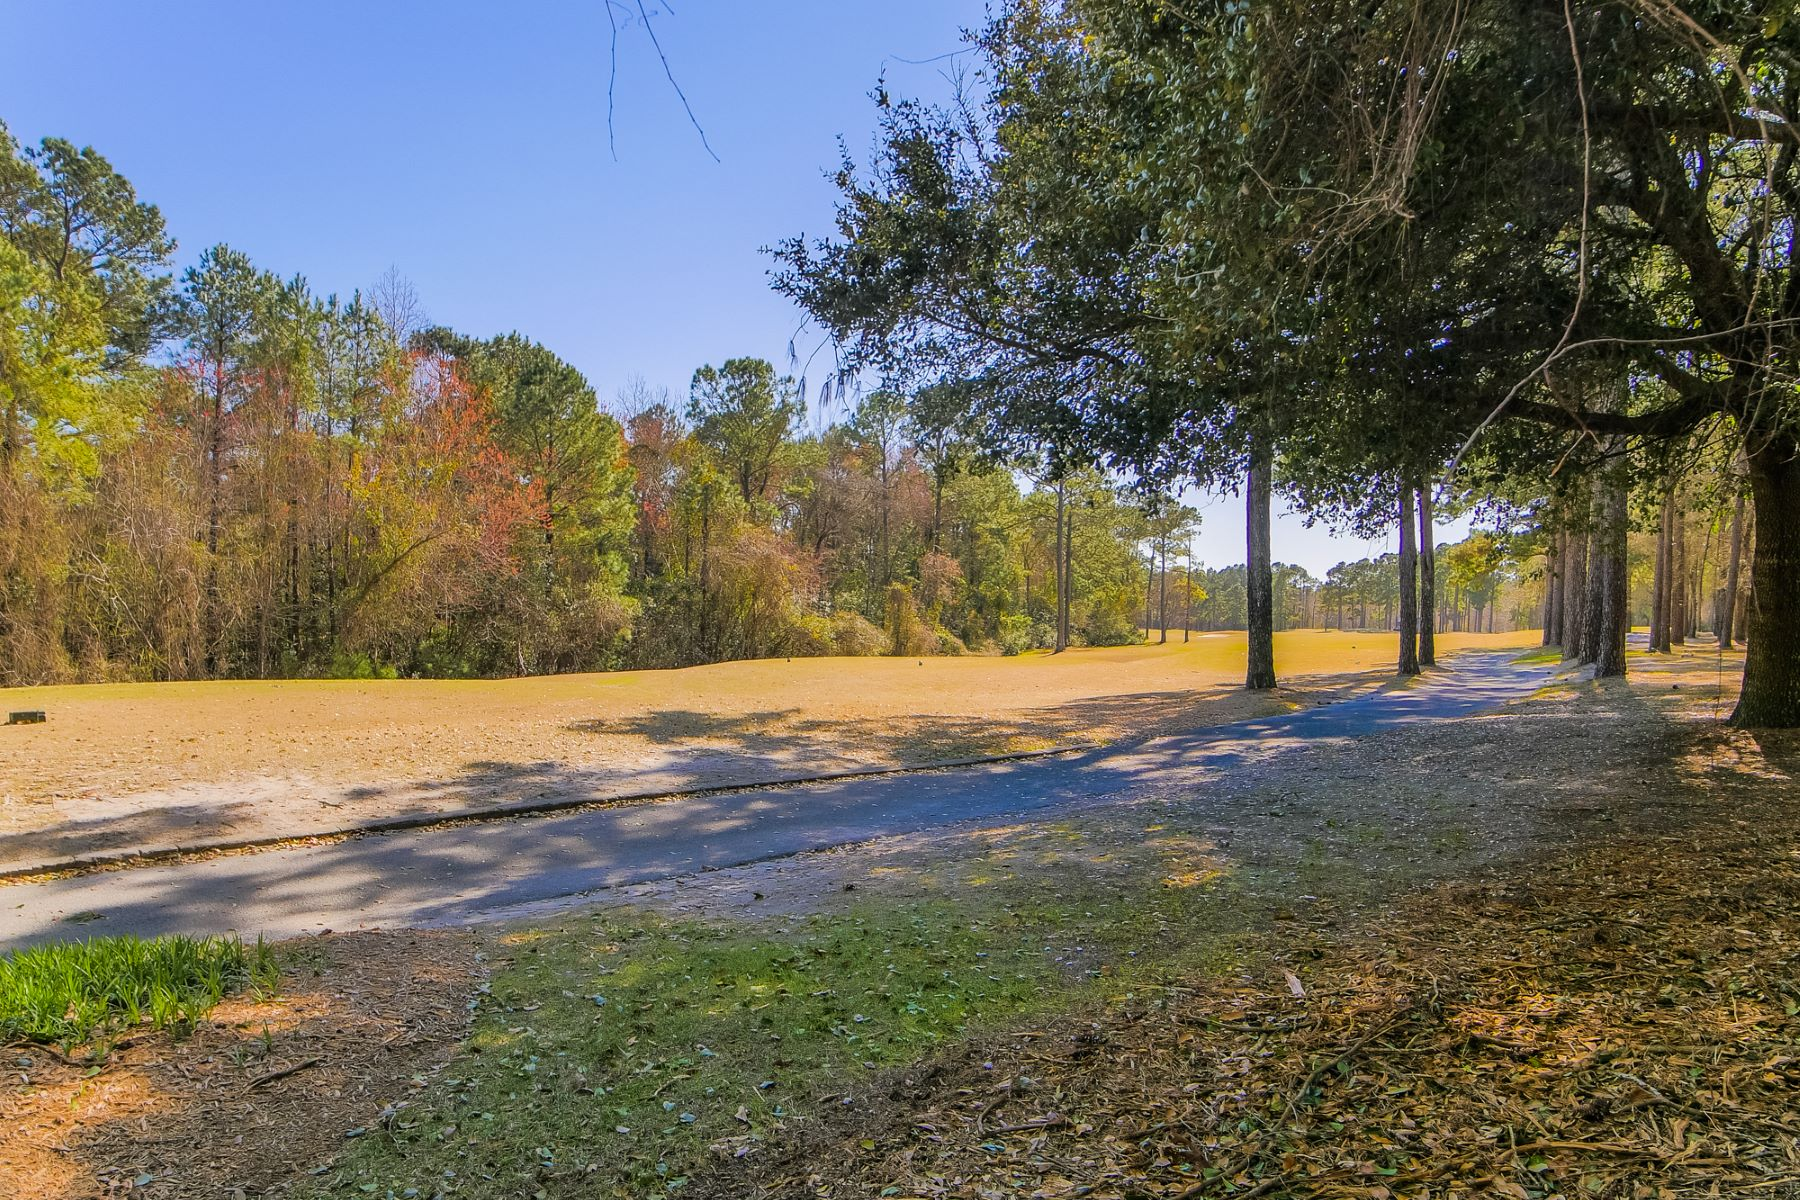 Land for Sale at Land for Luxury Country Club Home 211 Seascape Drive Lot #23 Sneads Ferry, North Carolina 28460 United States